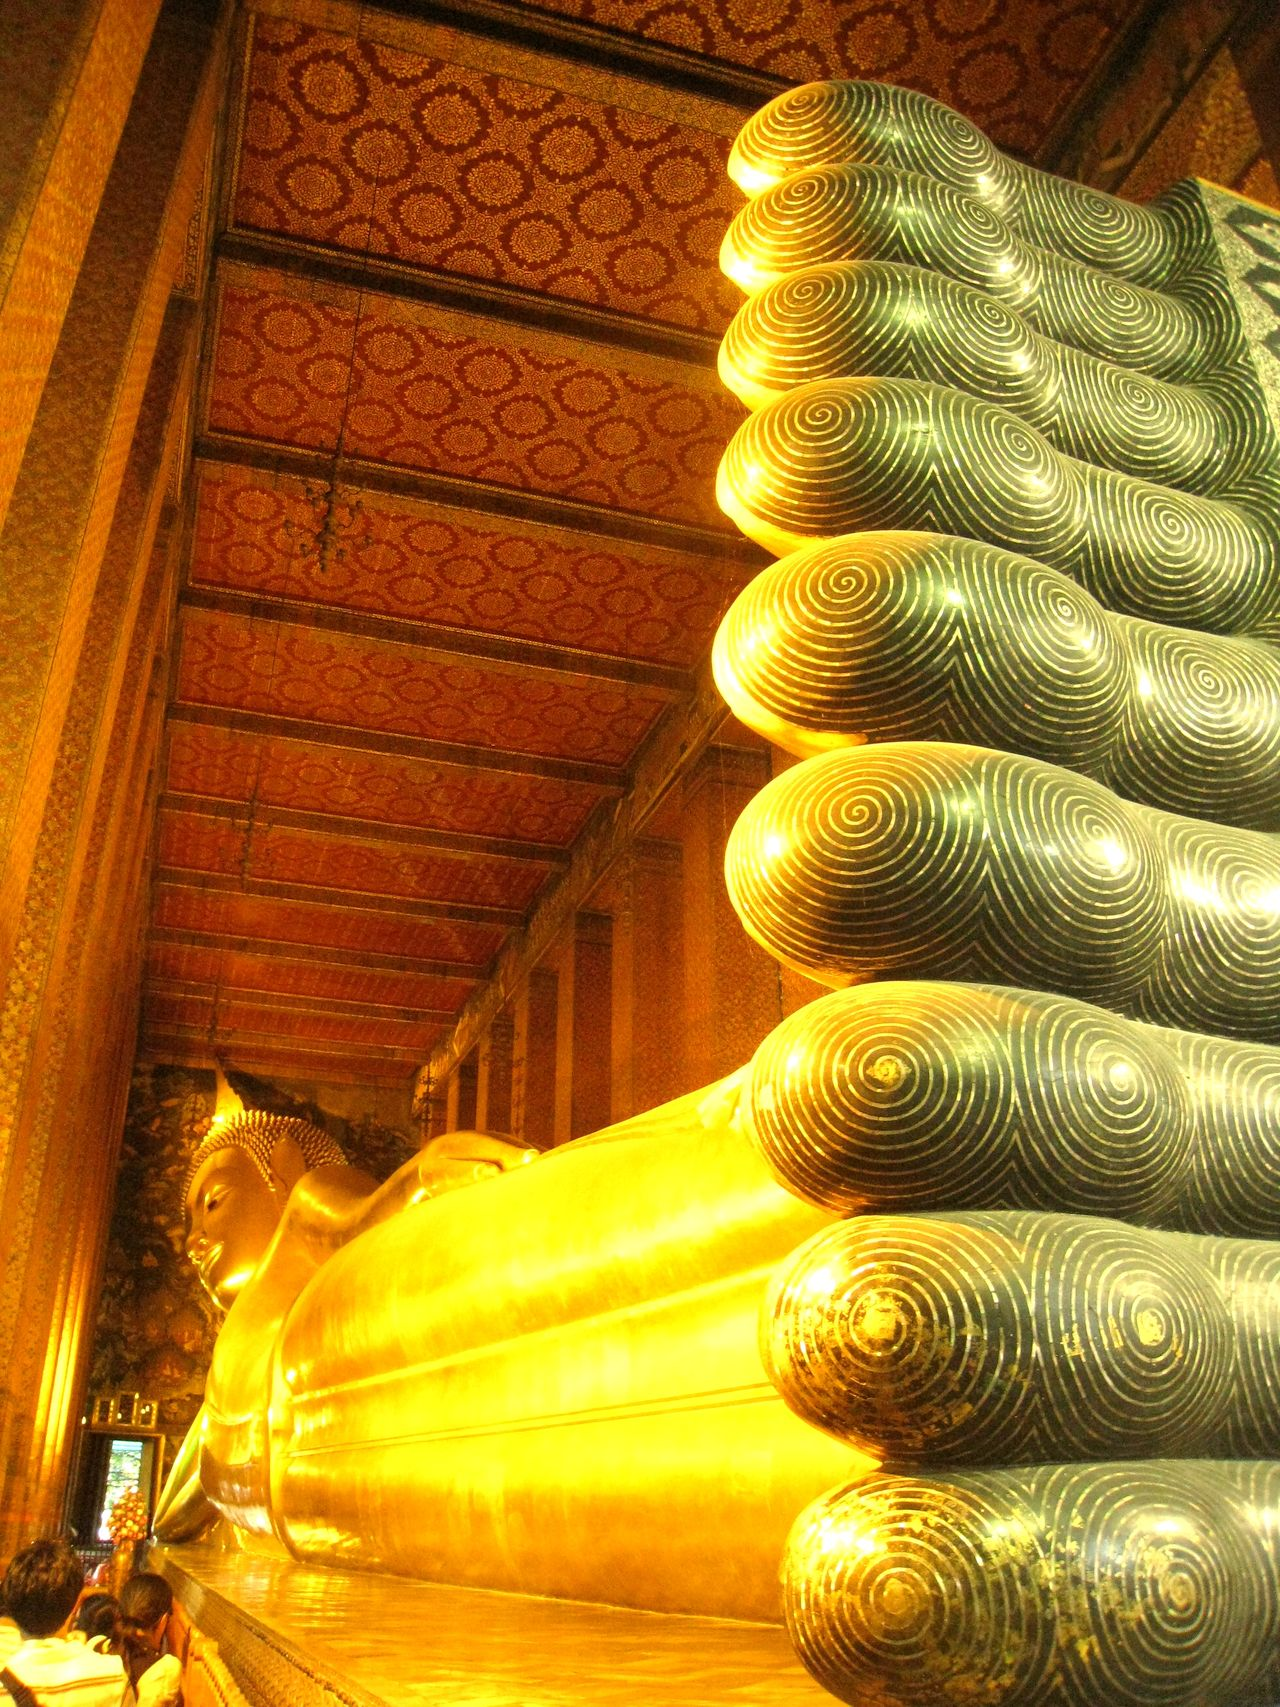 Bangkok Buddha Buddhism Golden Religious  Temple Temple Of The Reclining Buddha Thailand Tourist Attraction  Wat Pho Wat Phra Chetuphon Vimolmangklararm Worship